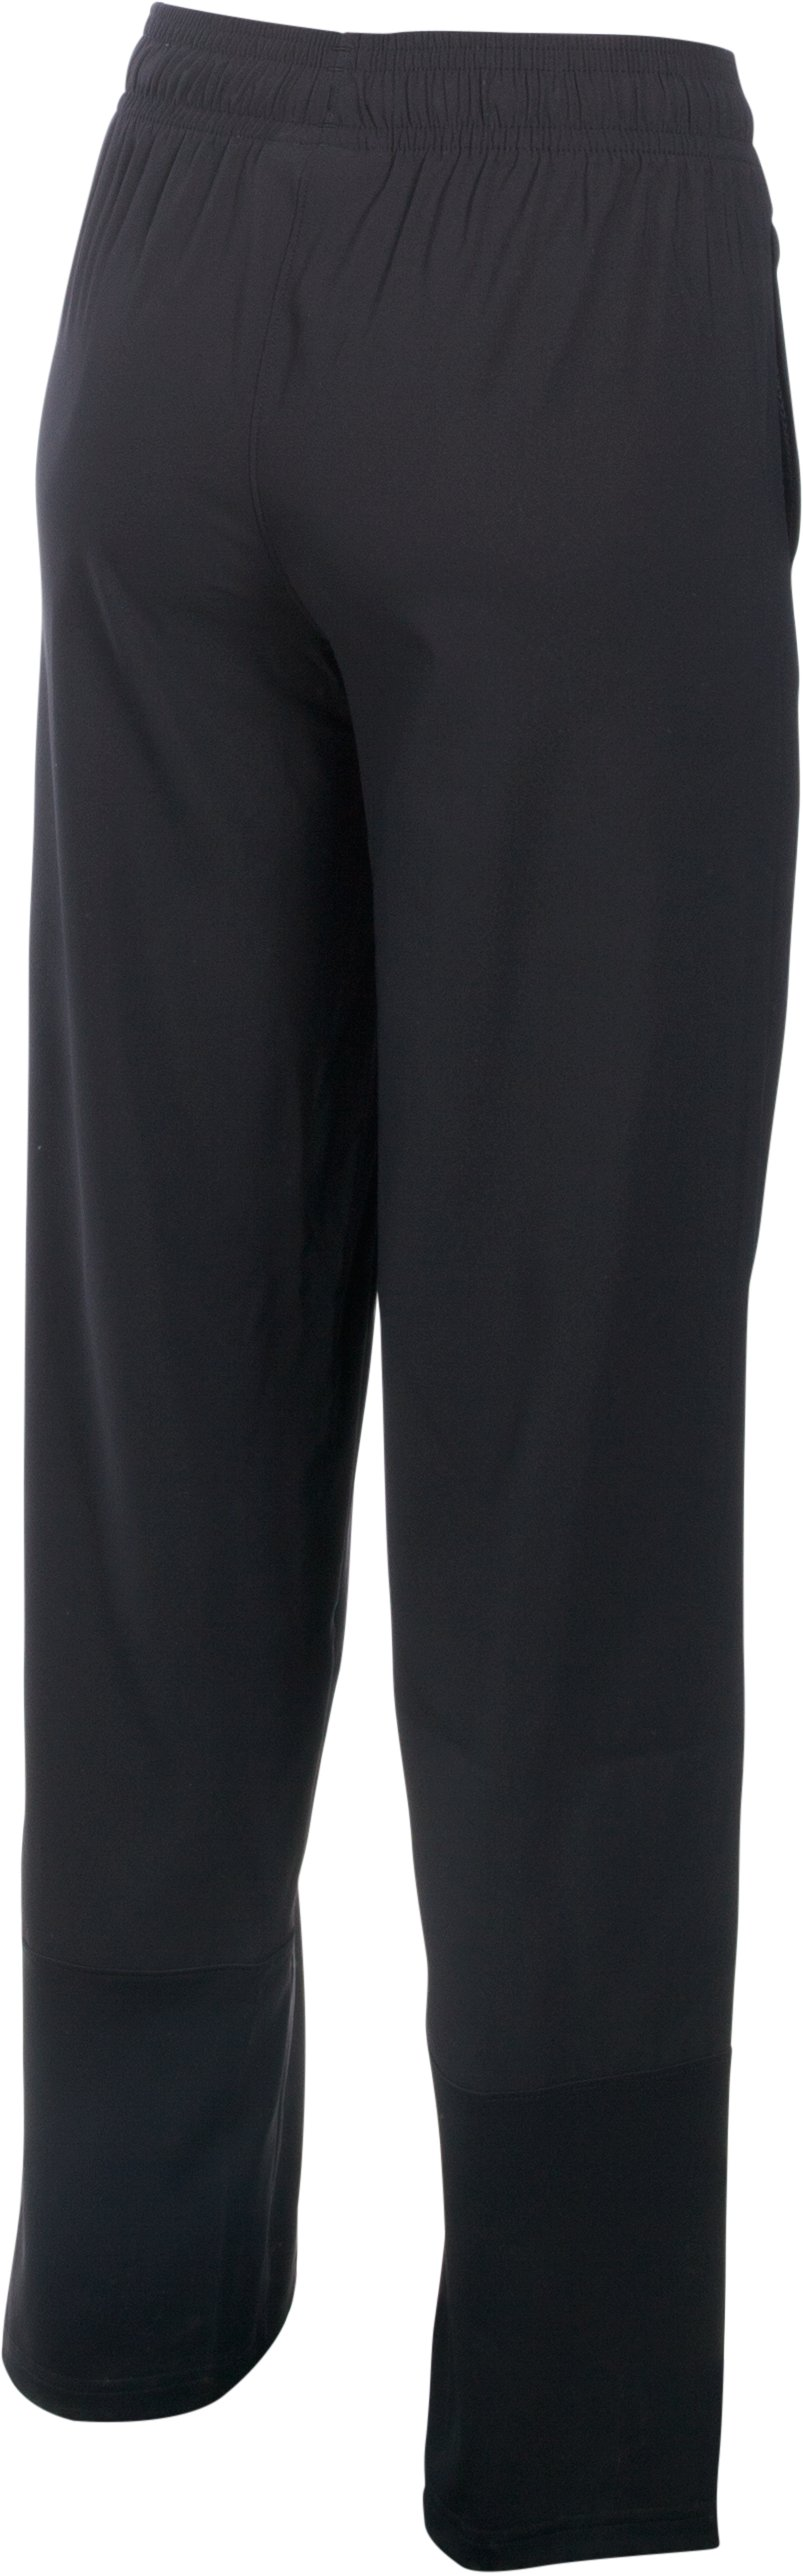 Women's Pre-Game Woven Pant, Black